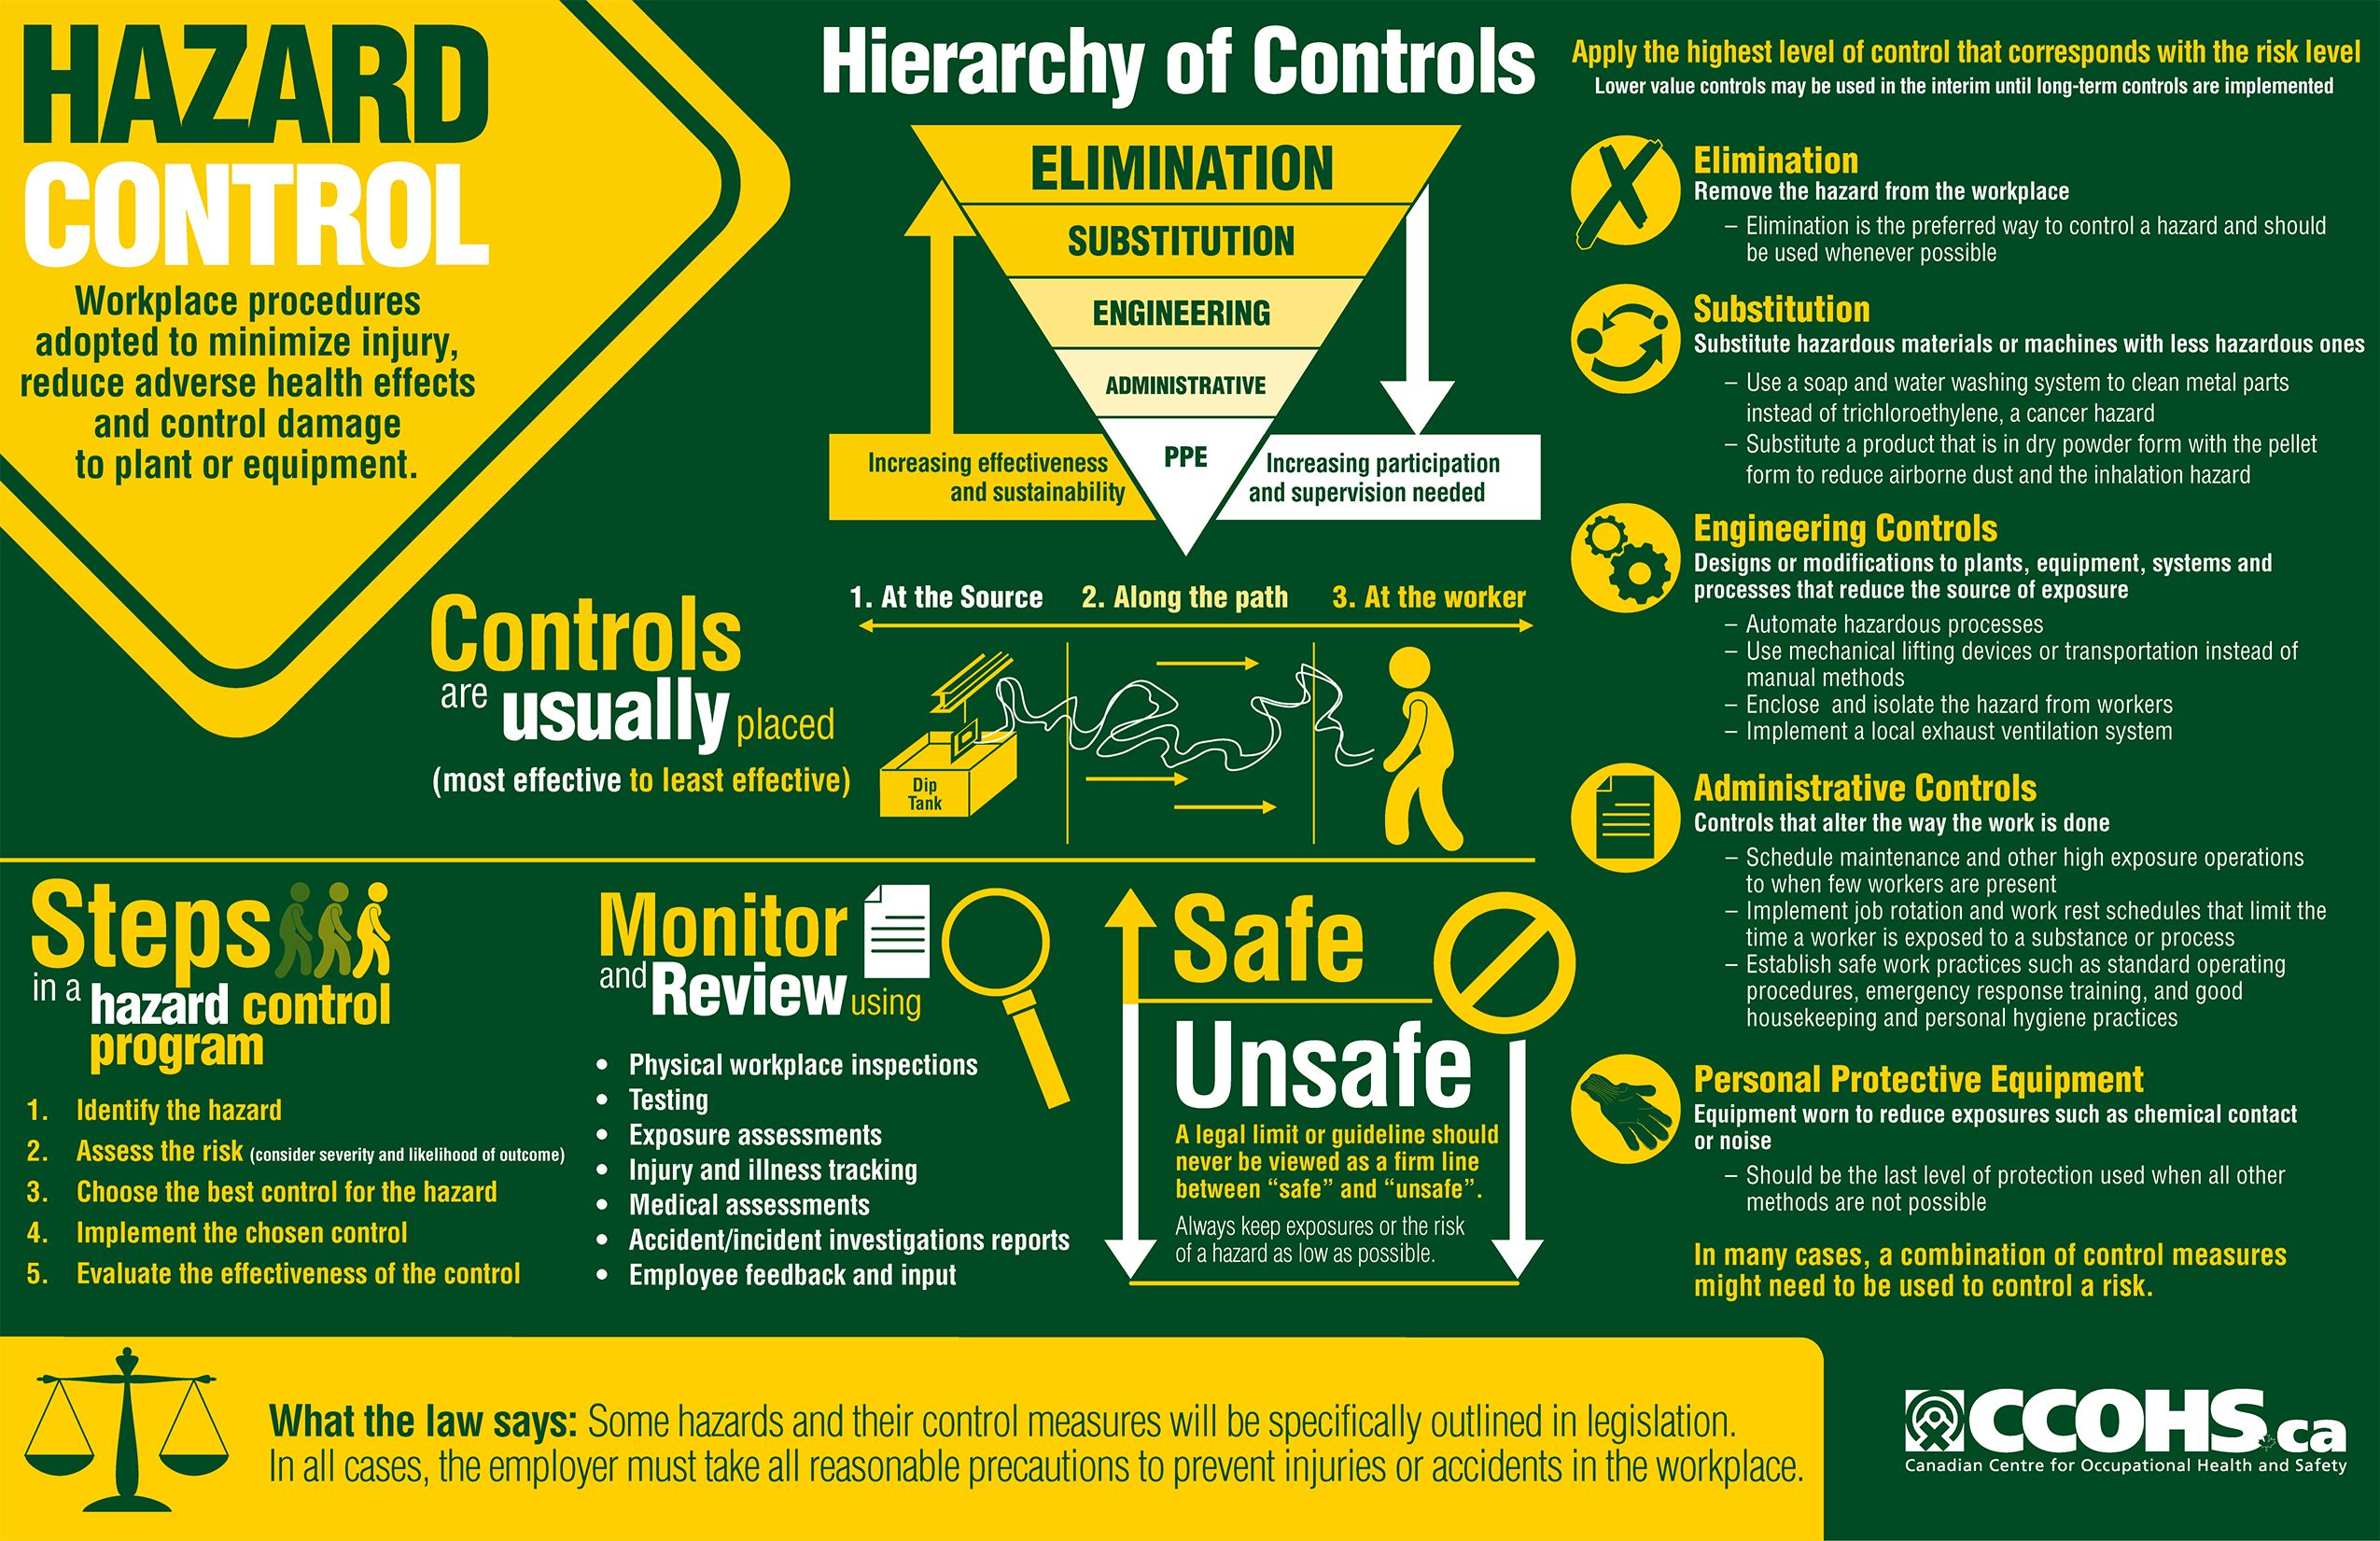 This infographic illustrates the elements of a hazard